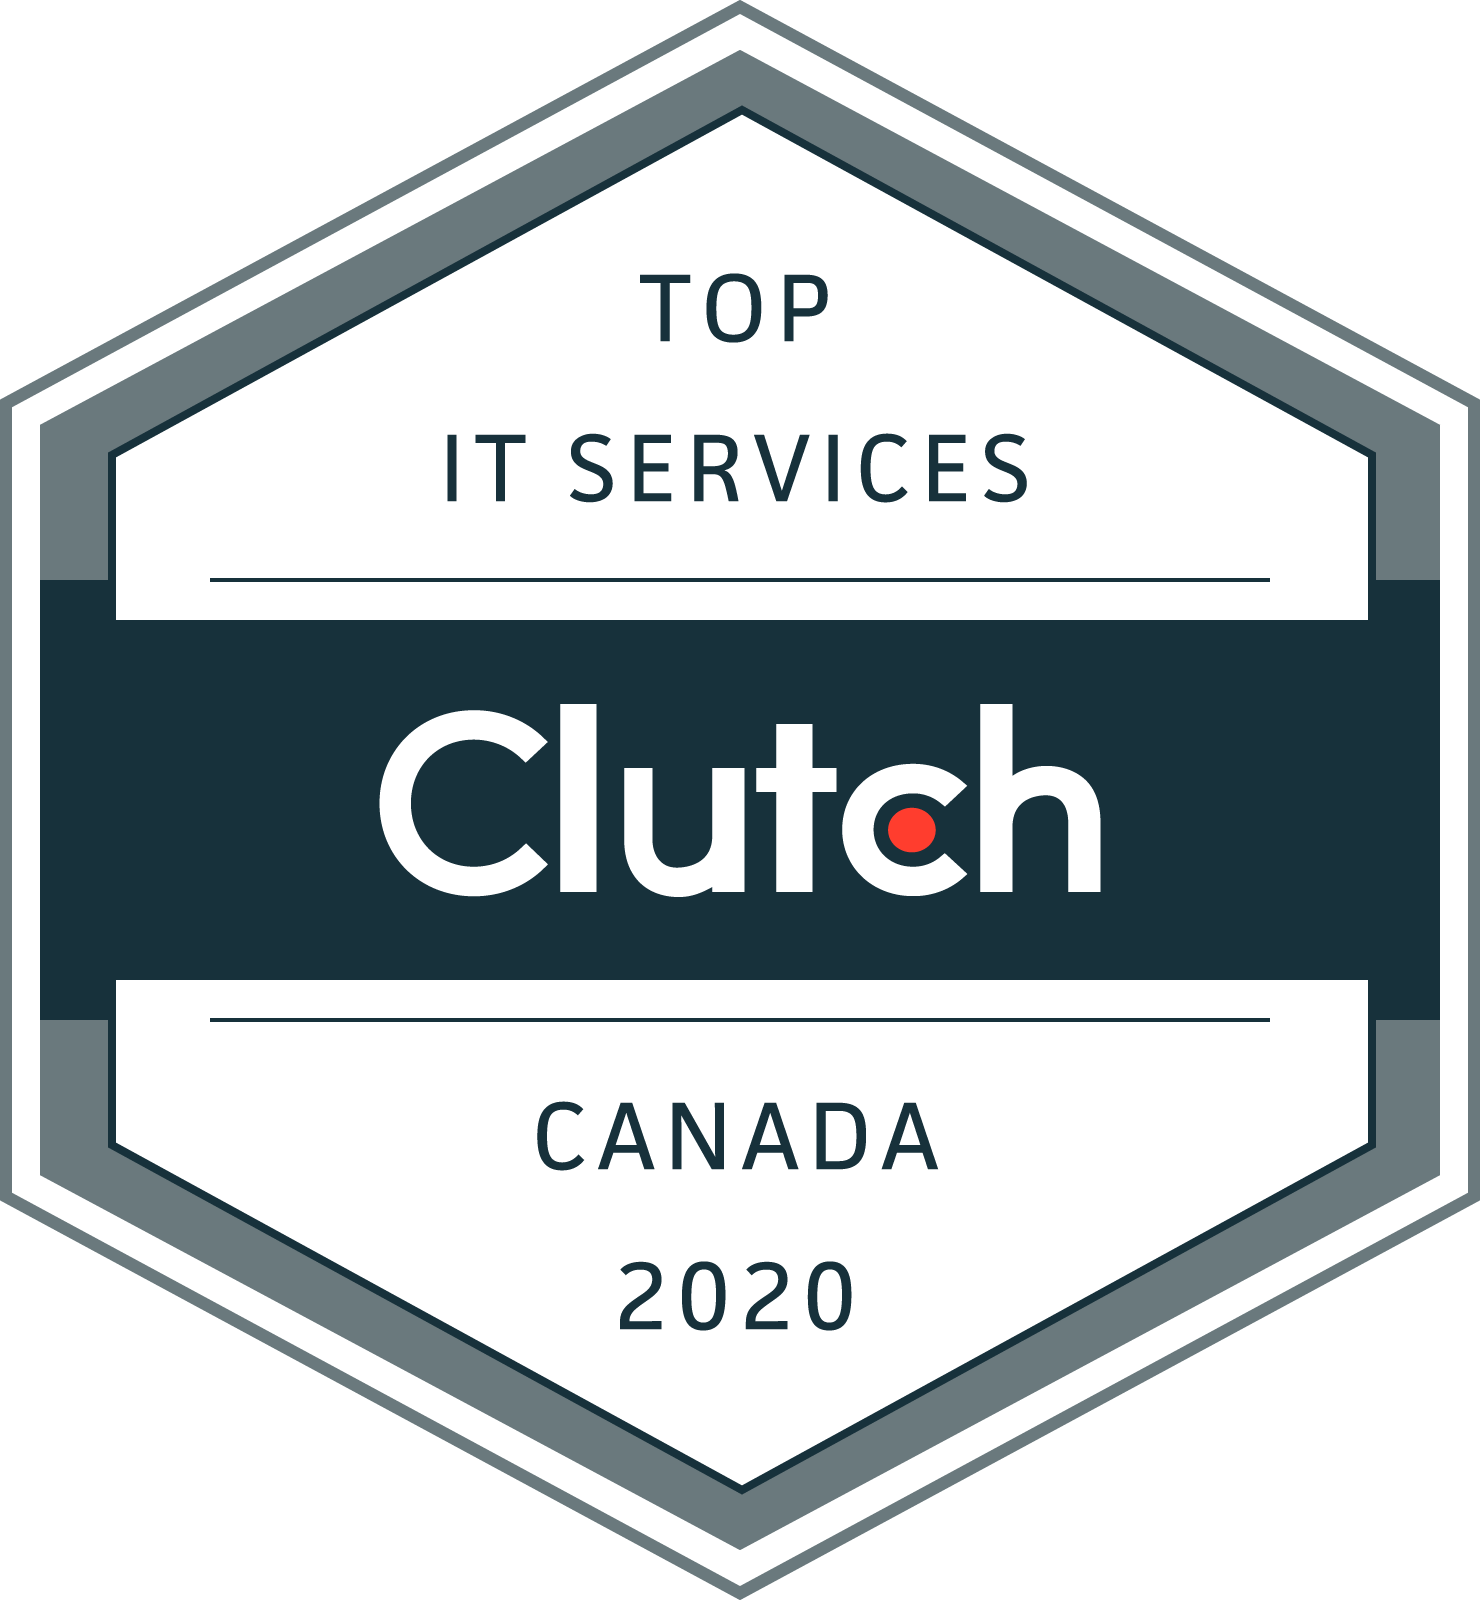 Top IT Services Canada 2020